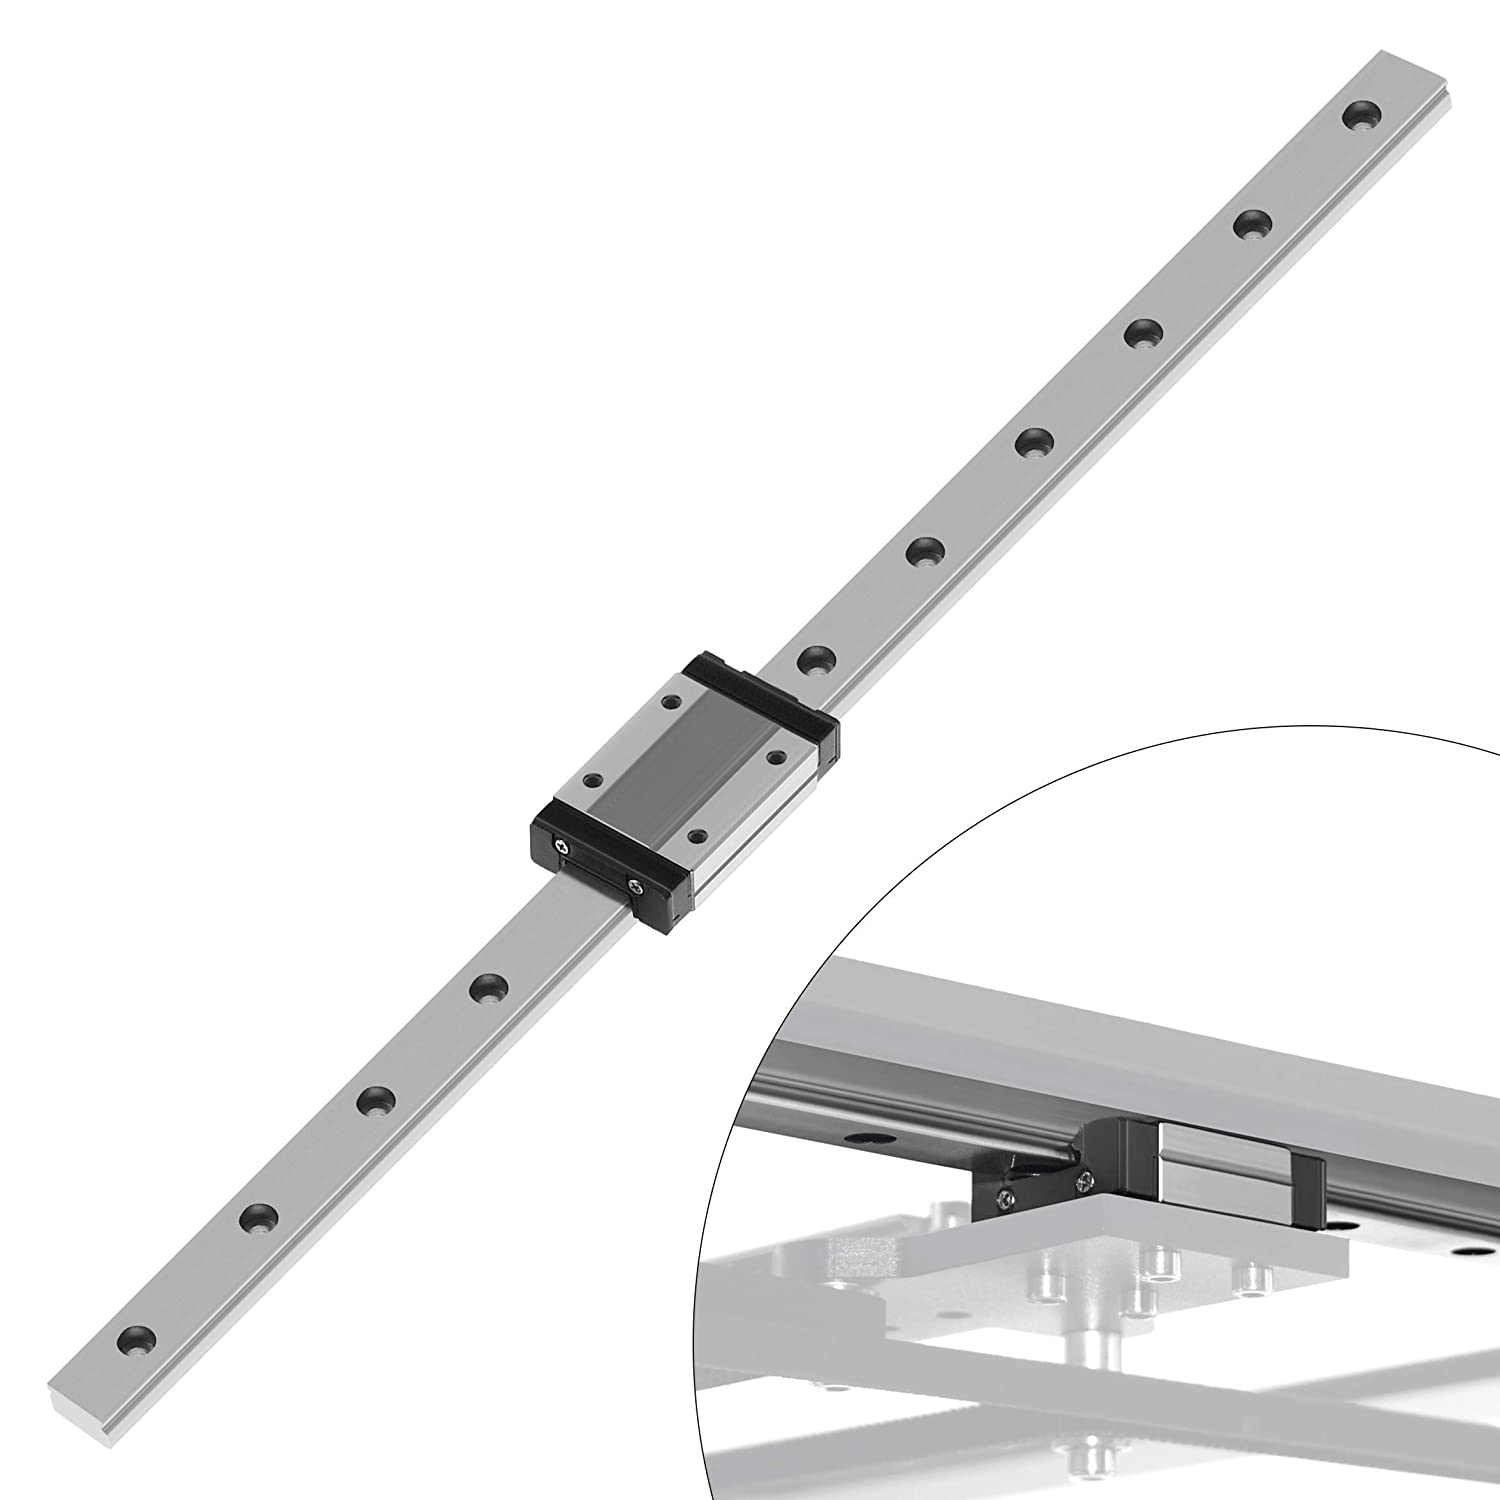 Twotrees MGN9C 300mm Linear Sliding Guideway with 1pcs Linear Bearing Sliding Block for 3D Printer and CNC Machine C-Type,Black